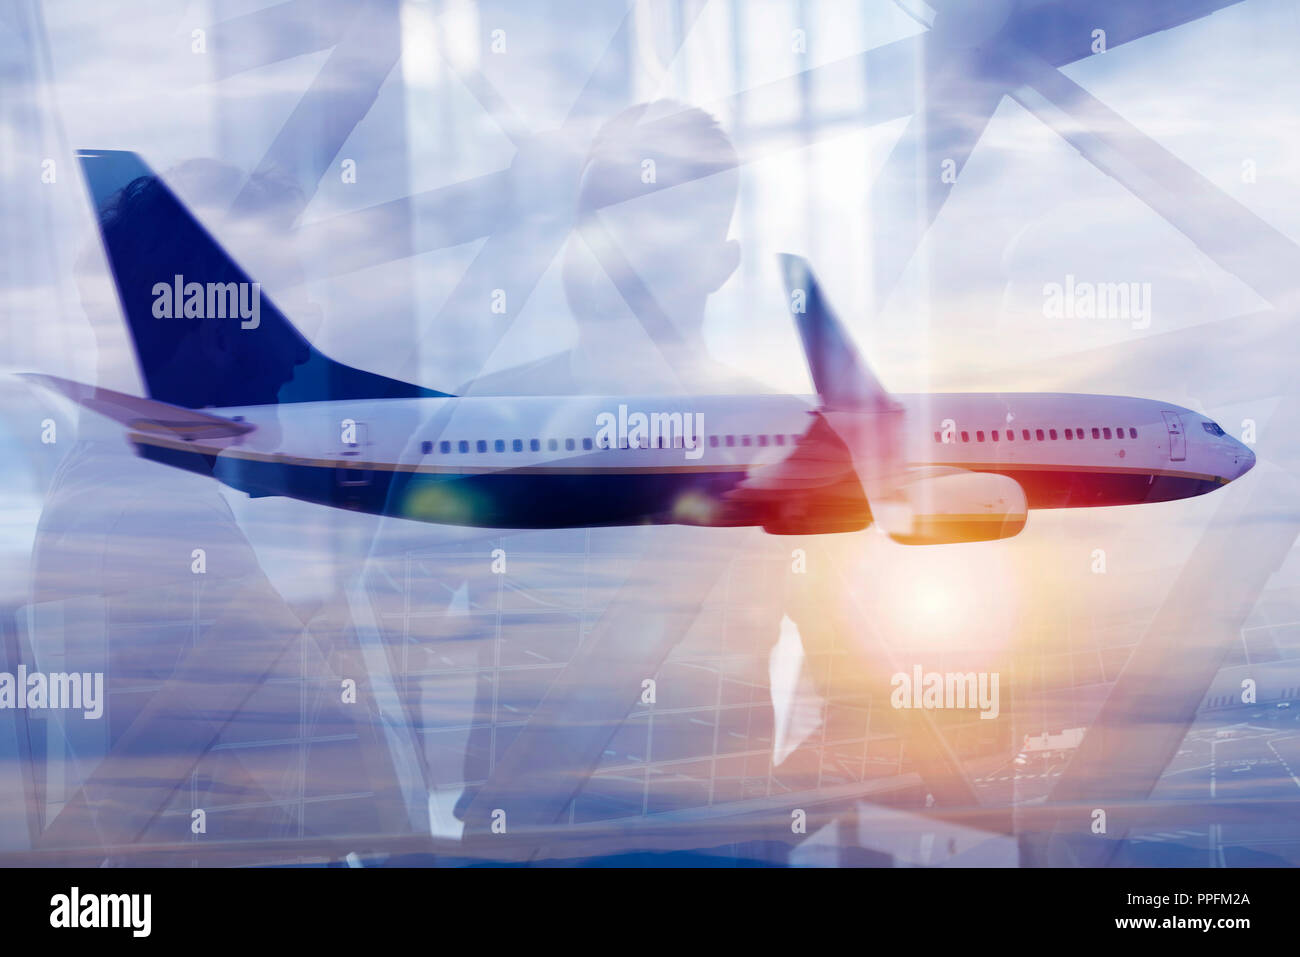 Modern airport with blur effects. double exposure - Stock Image